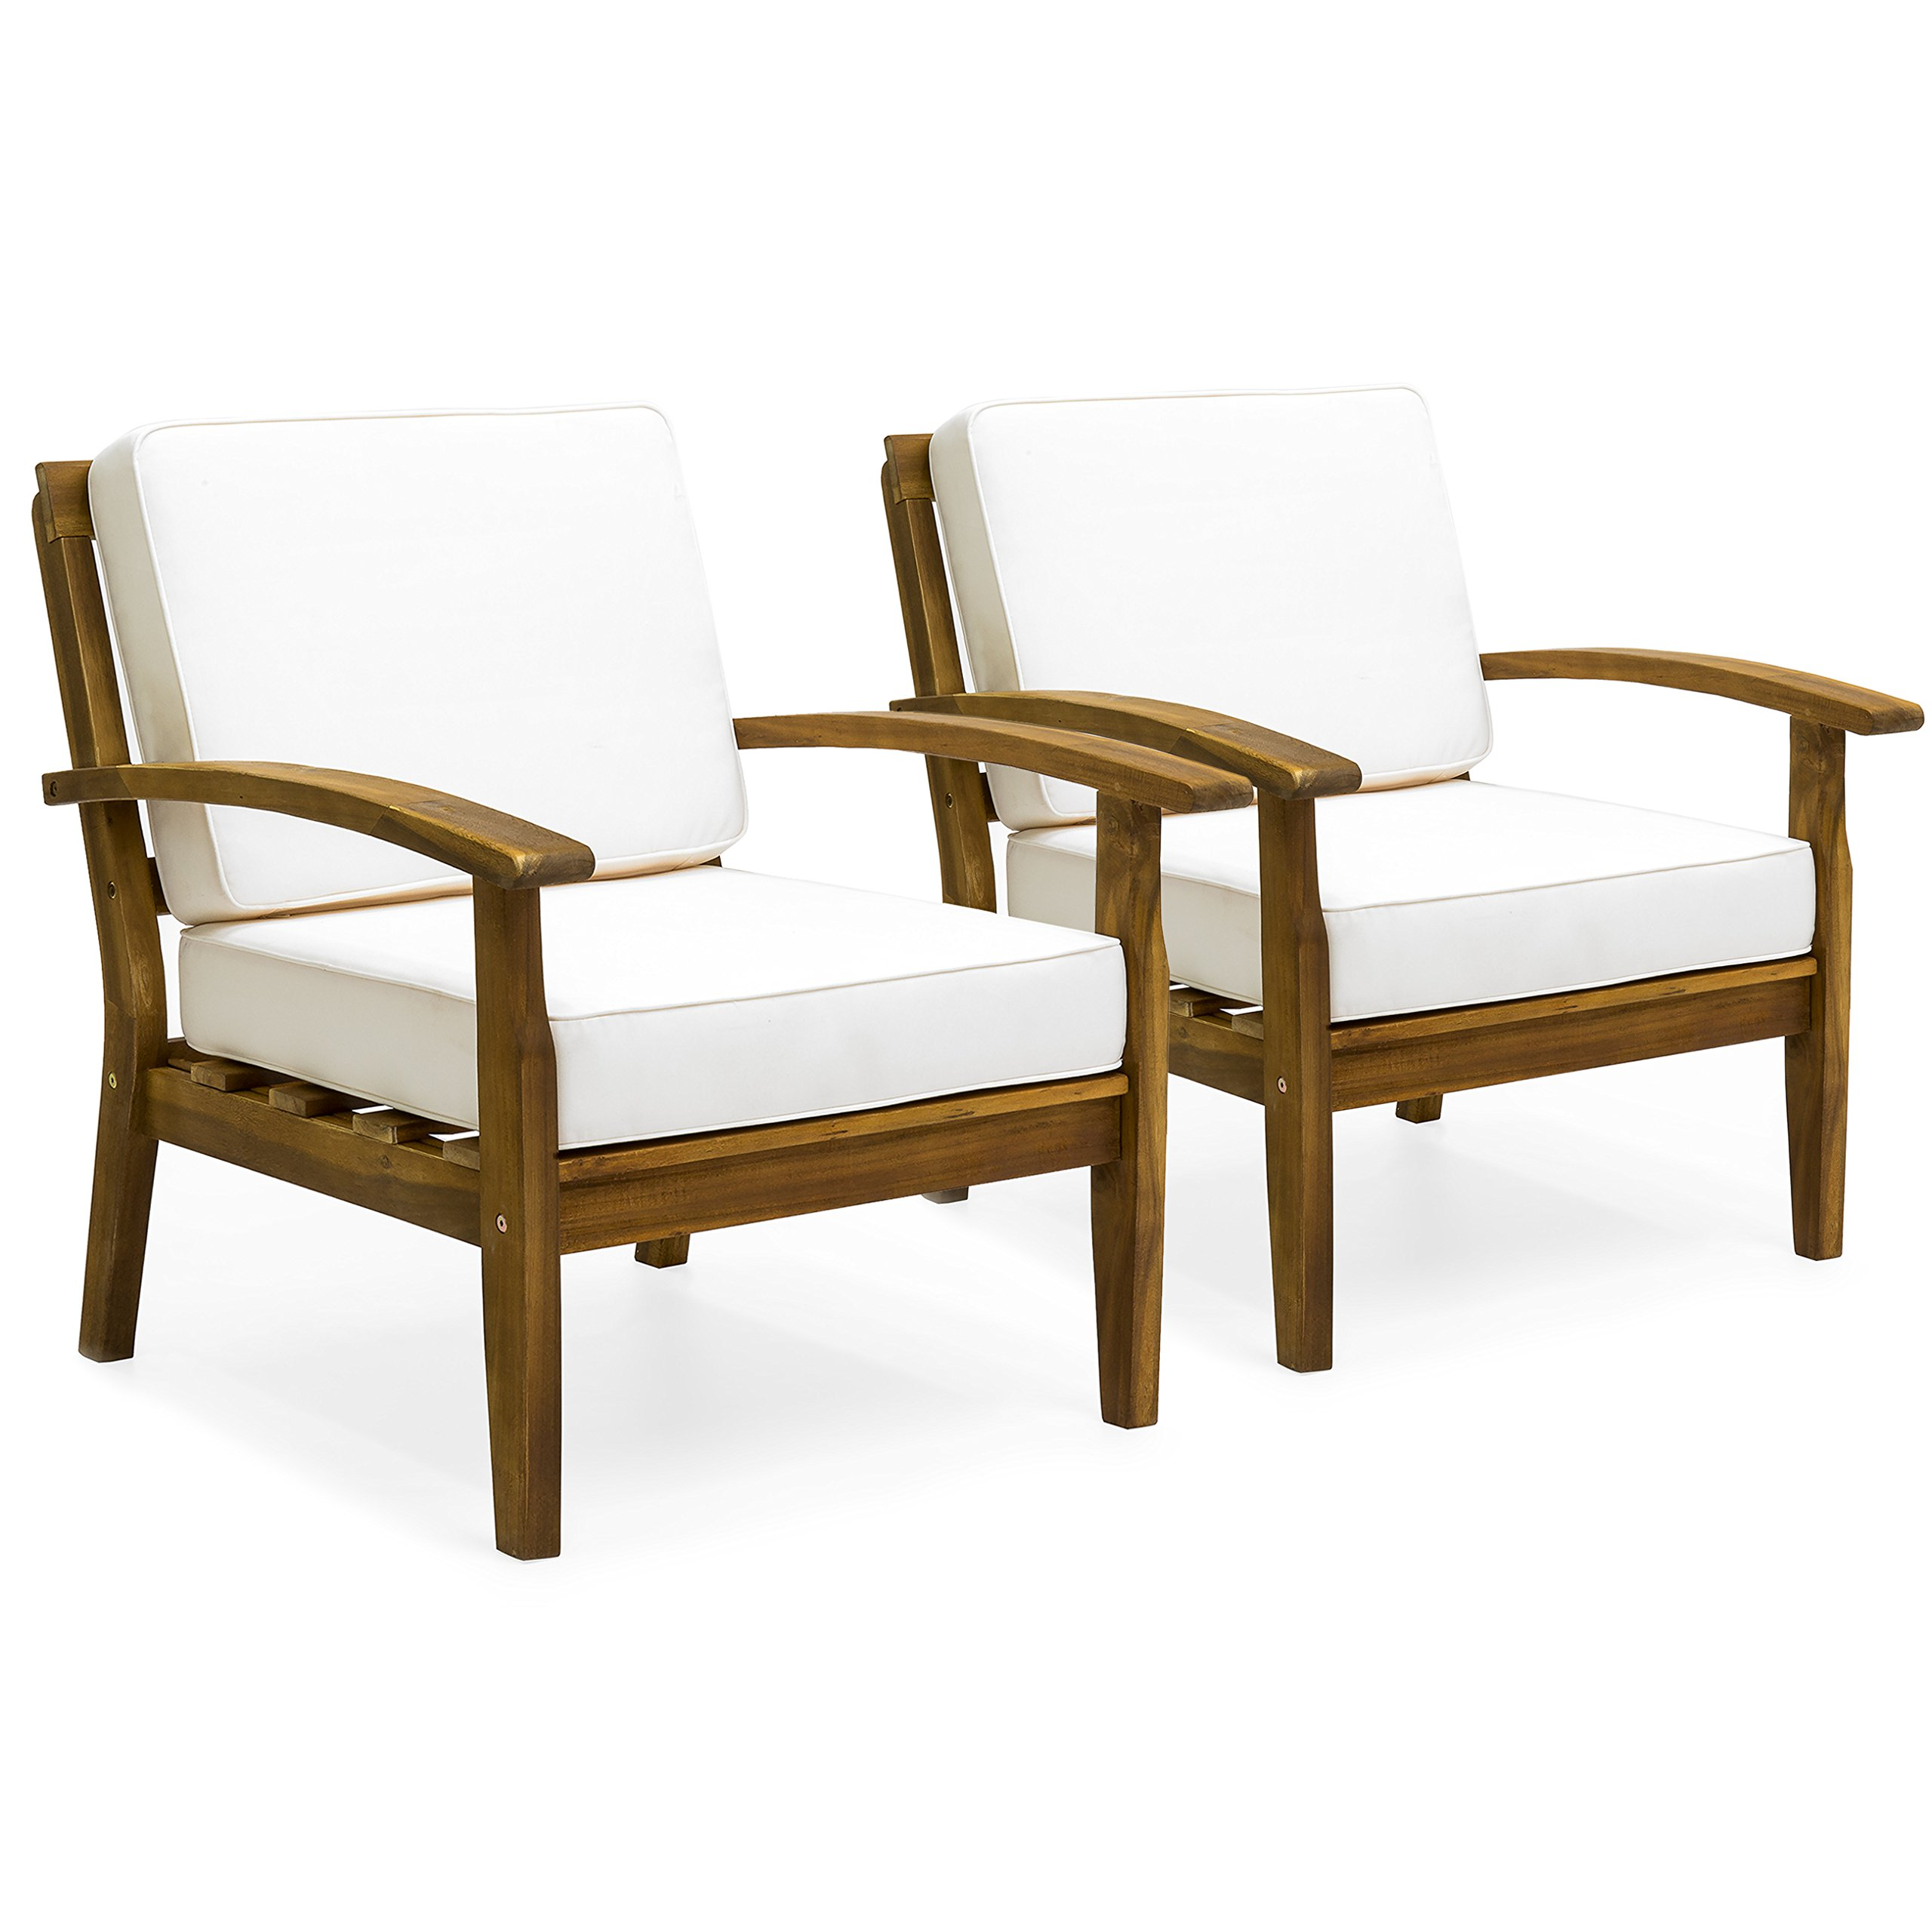 Best Choice Products Set of 2 Outdoor Acacia Wood Club Chairs w/Cushions (Cream)